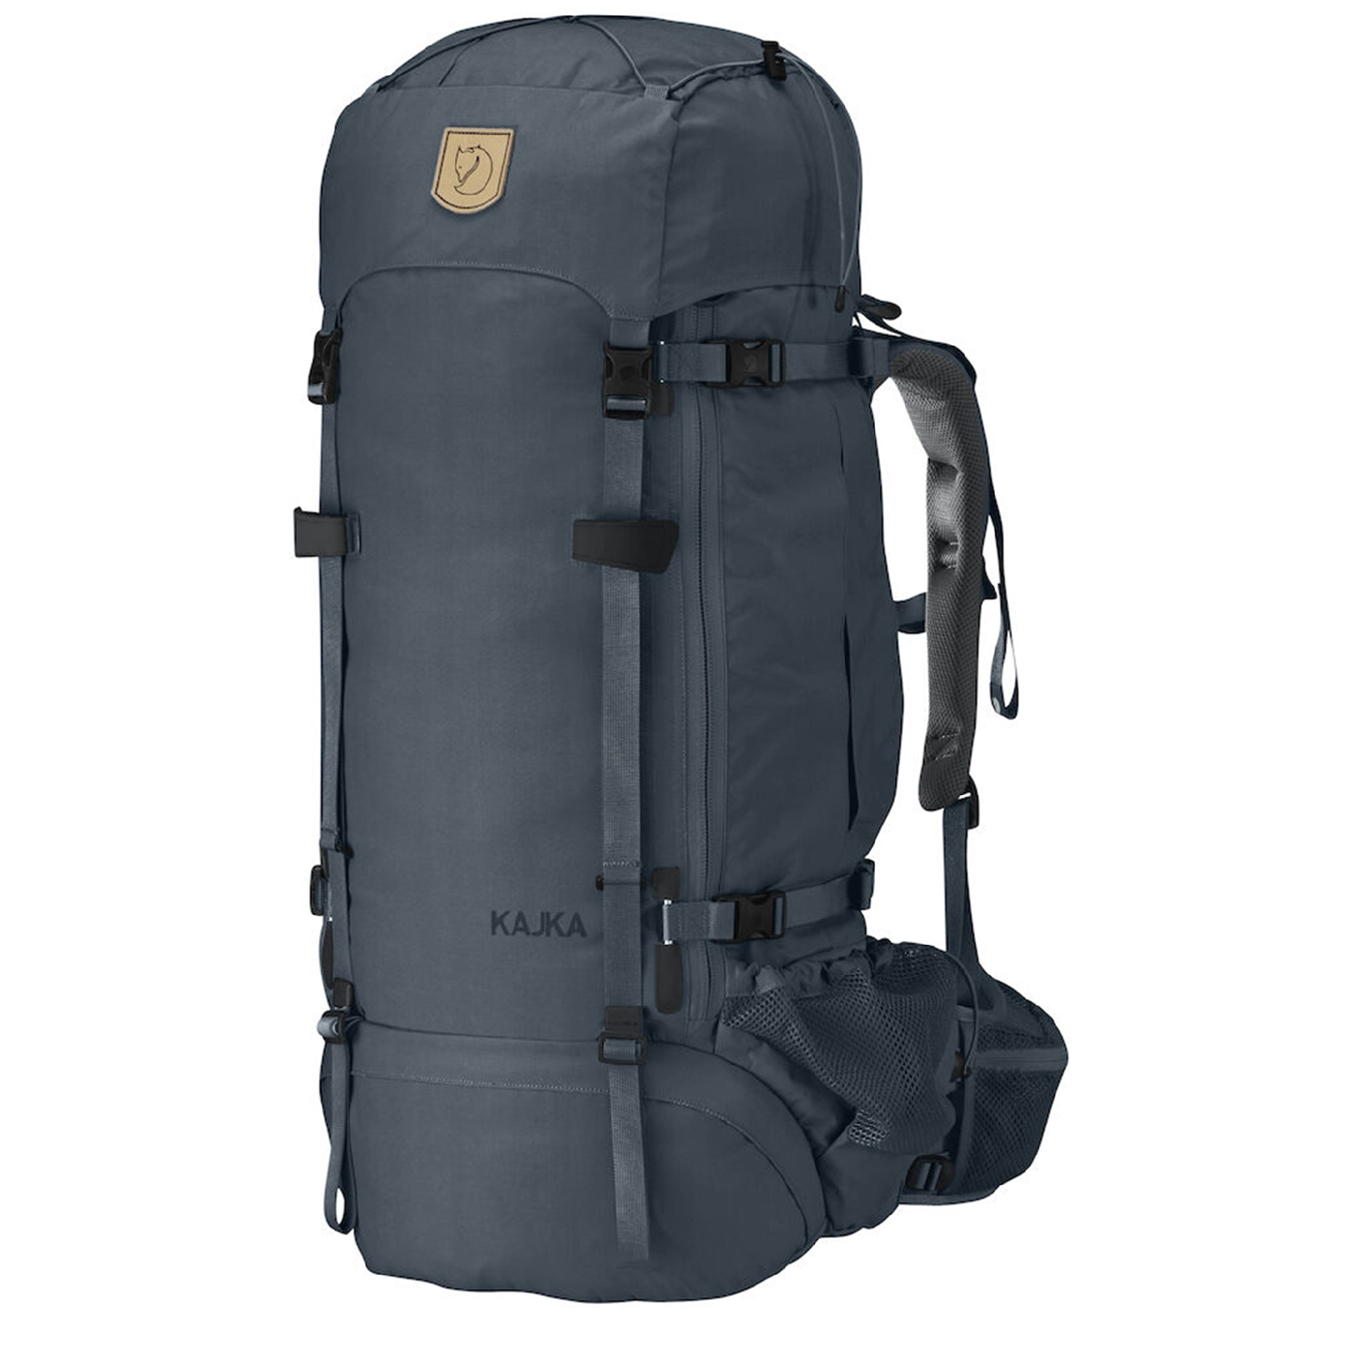 Fjallraven Kajka 55 W graphite backpack